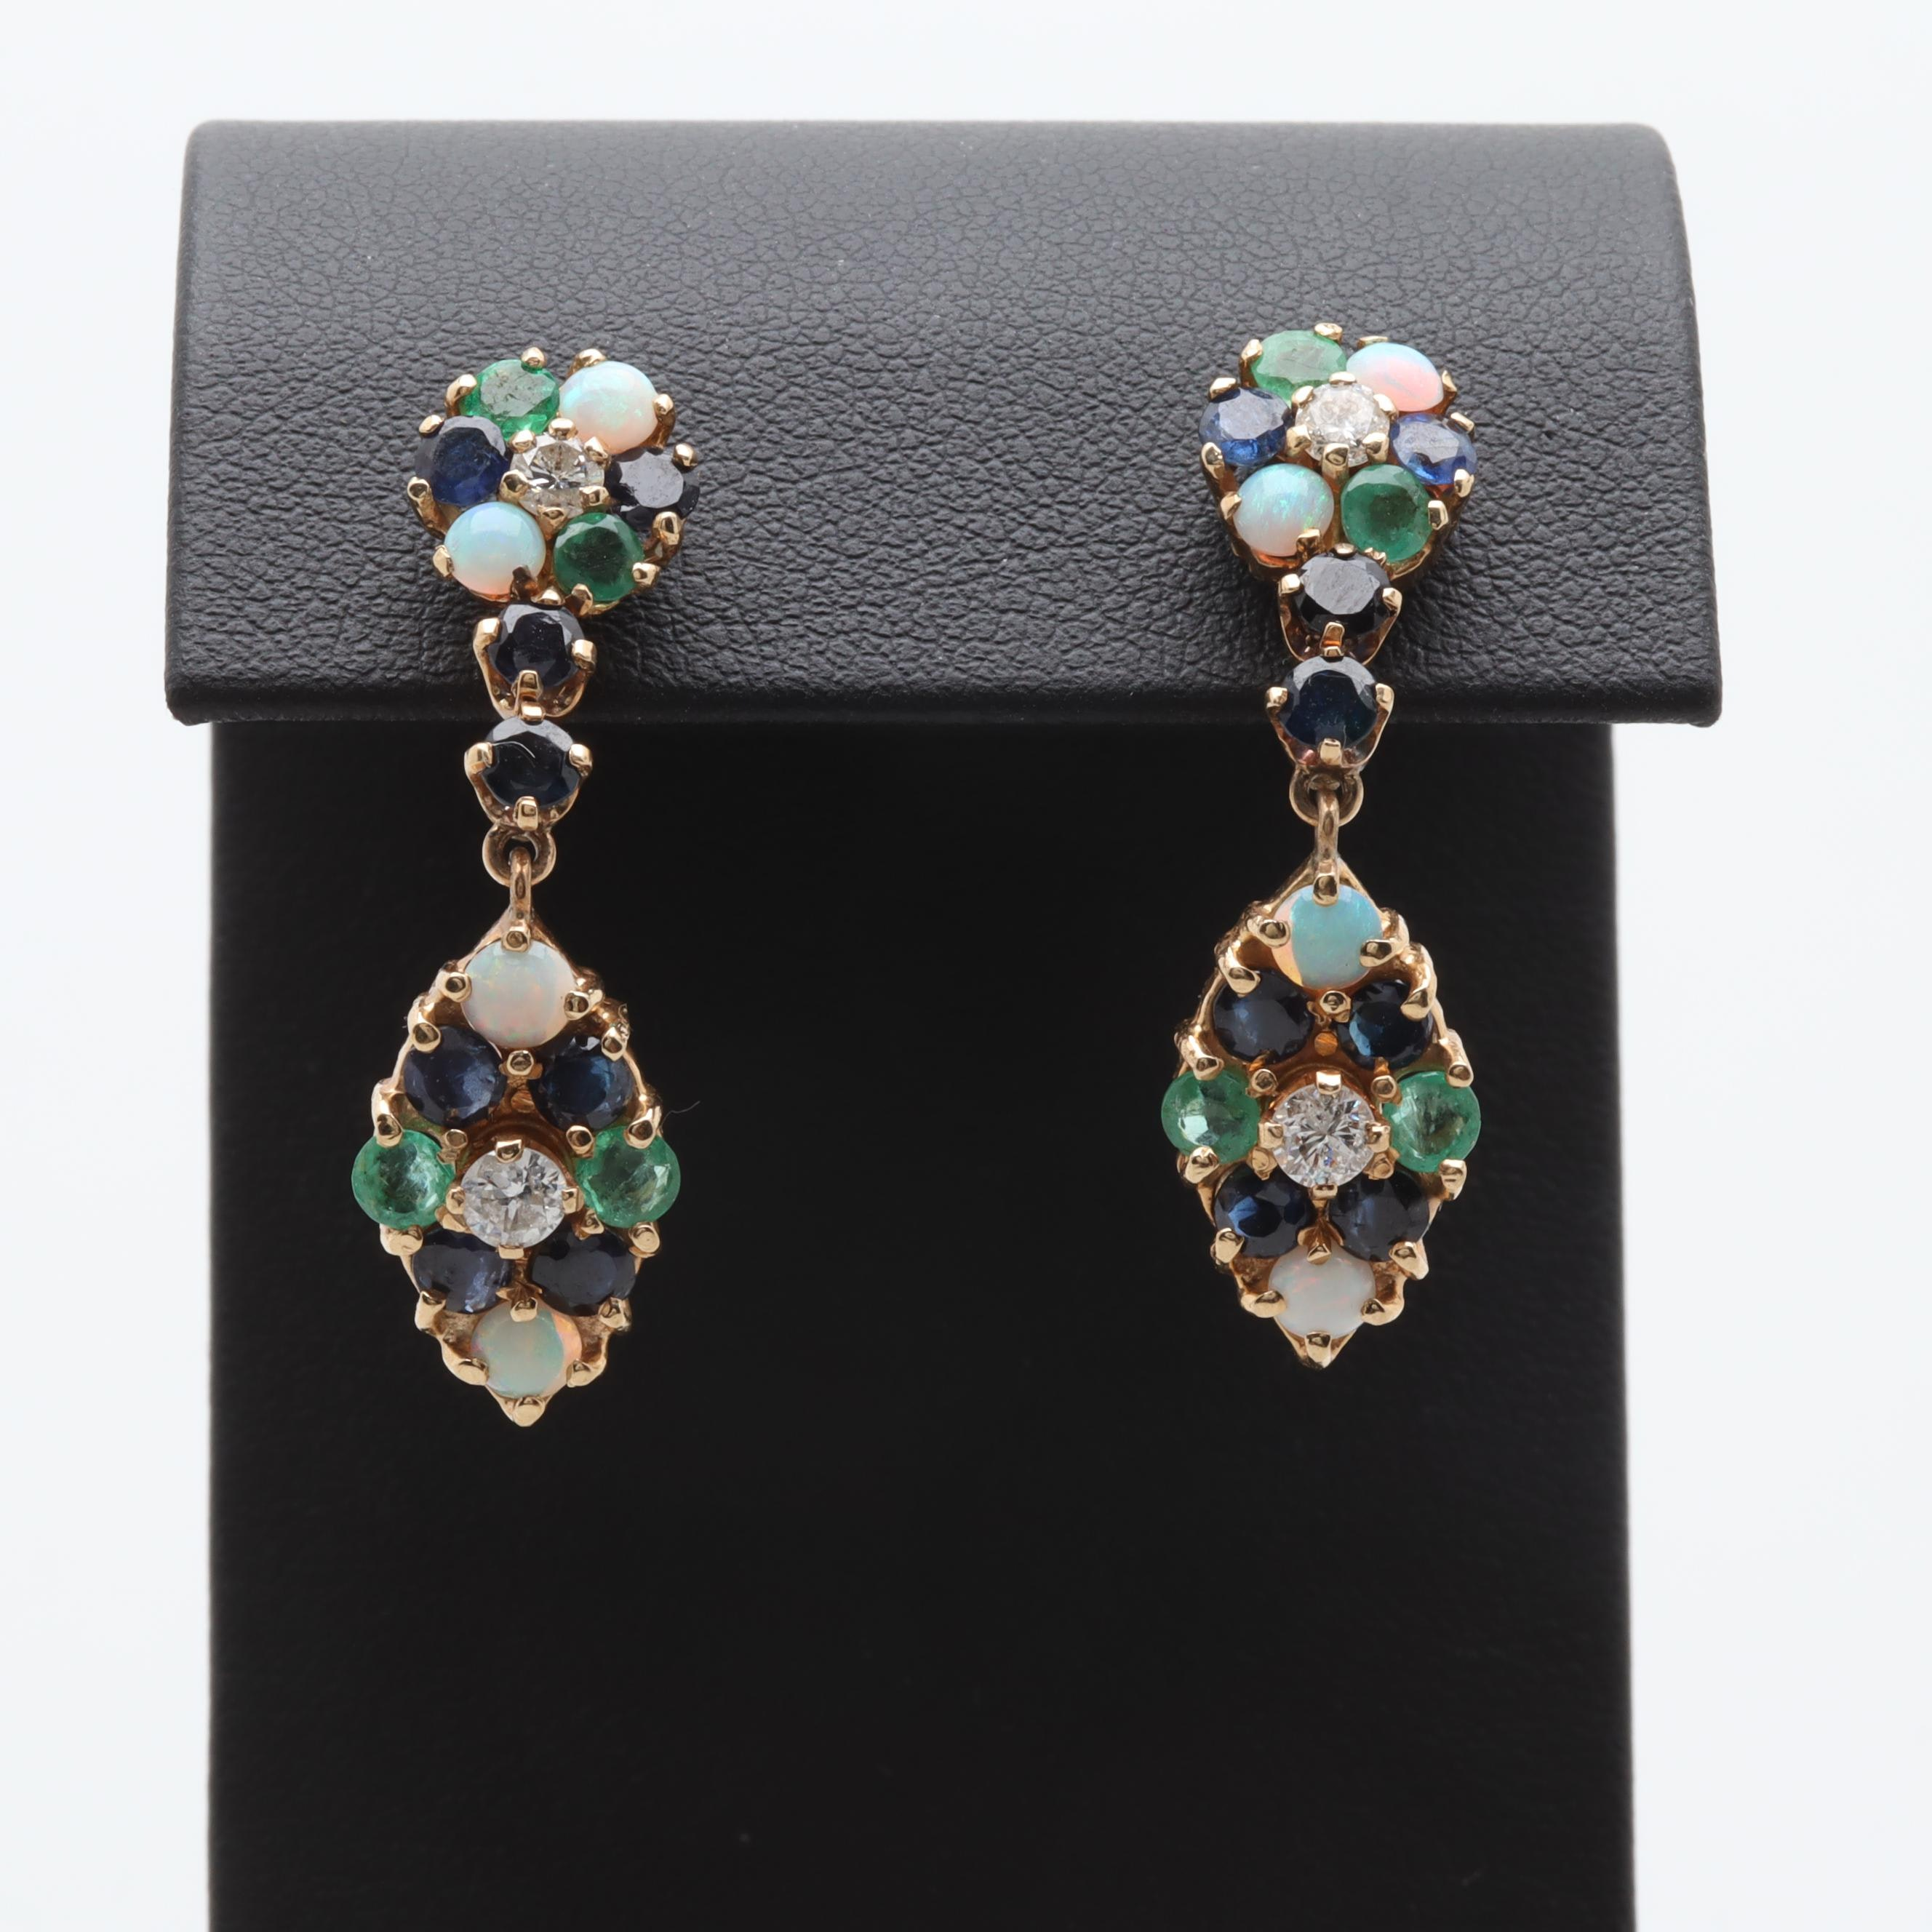 14K Yellow Gold Diamond, Emerald, Opal, and Sapphire Earrings